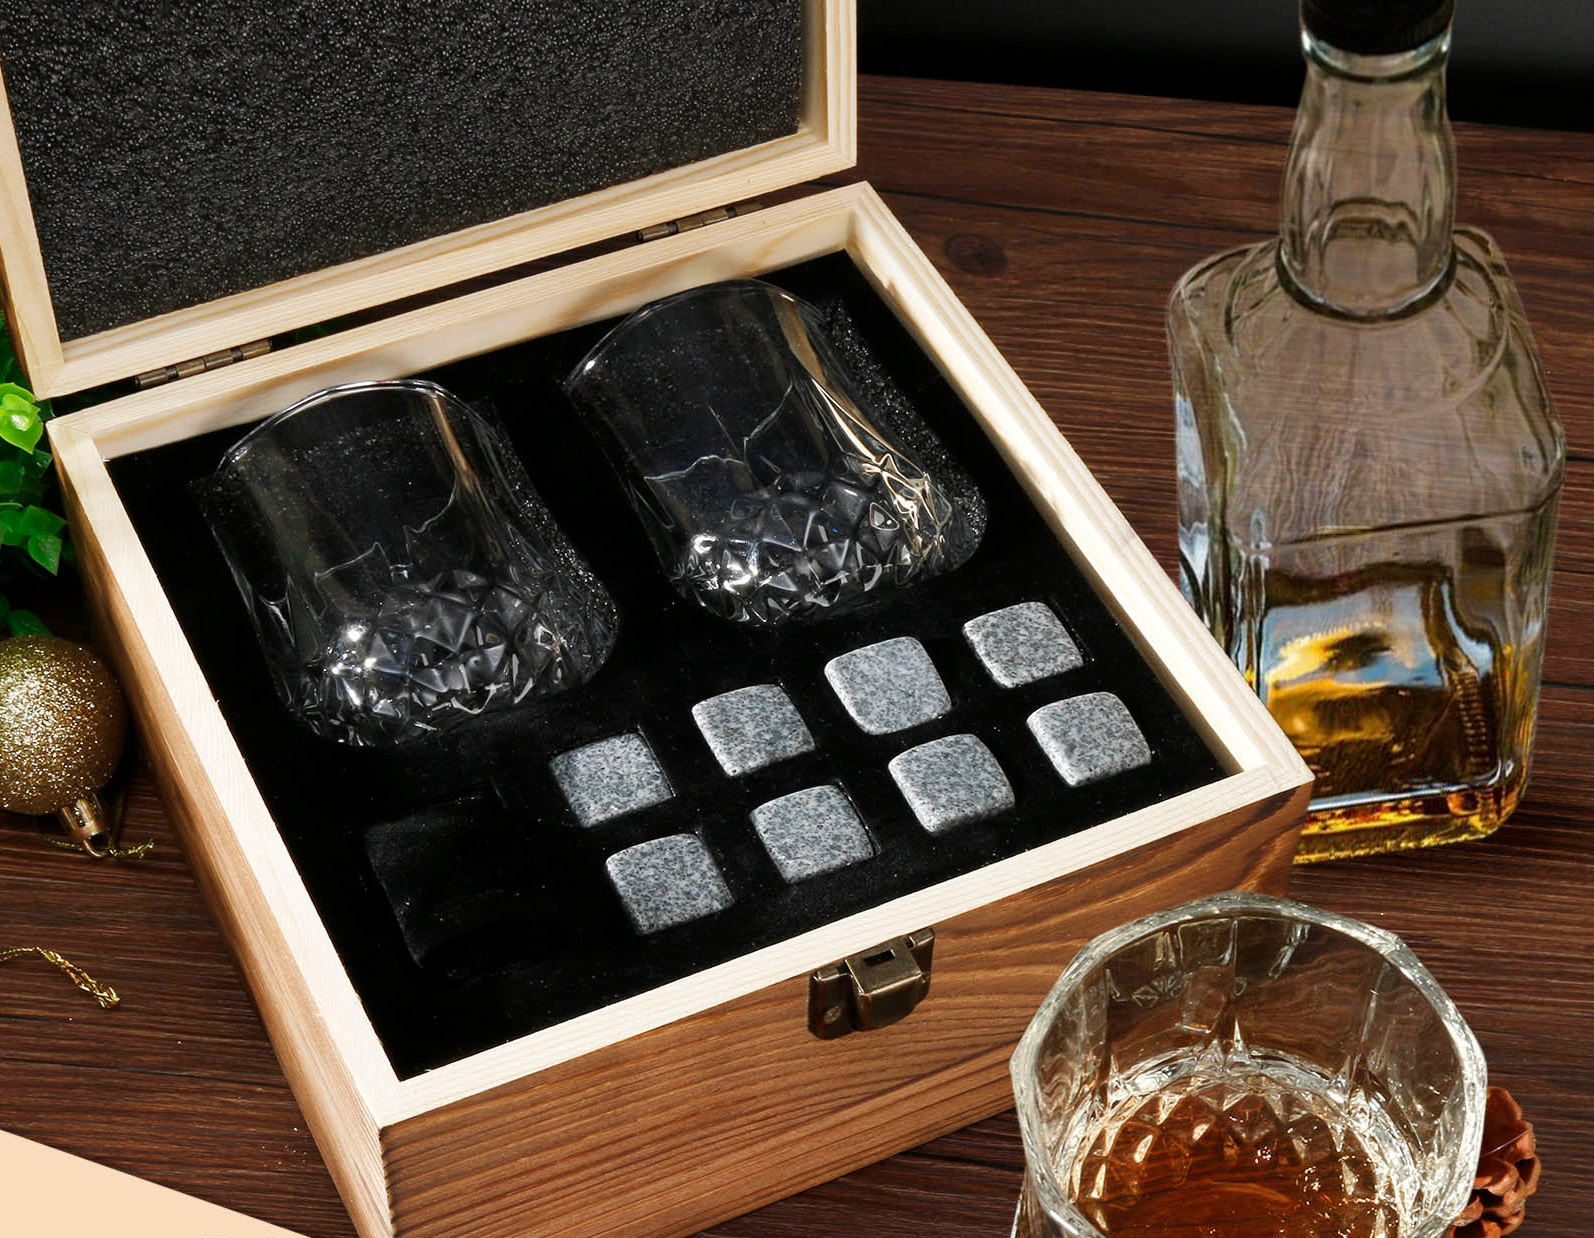 Cooling-Stones 25+ Best Brother Gift Ideas to Give on His Birthday 2020/2021